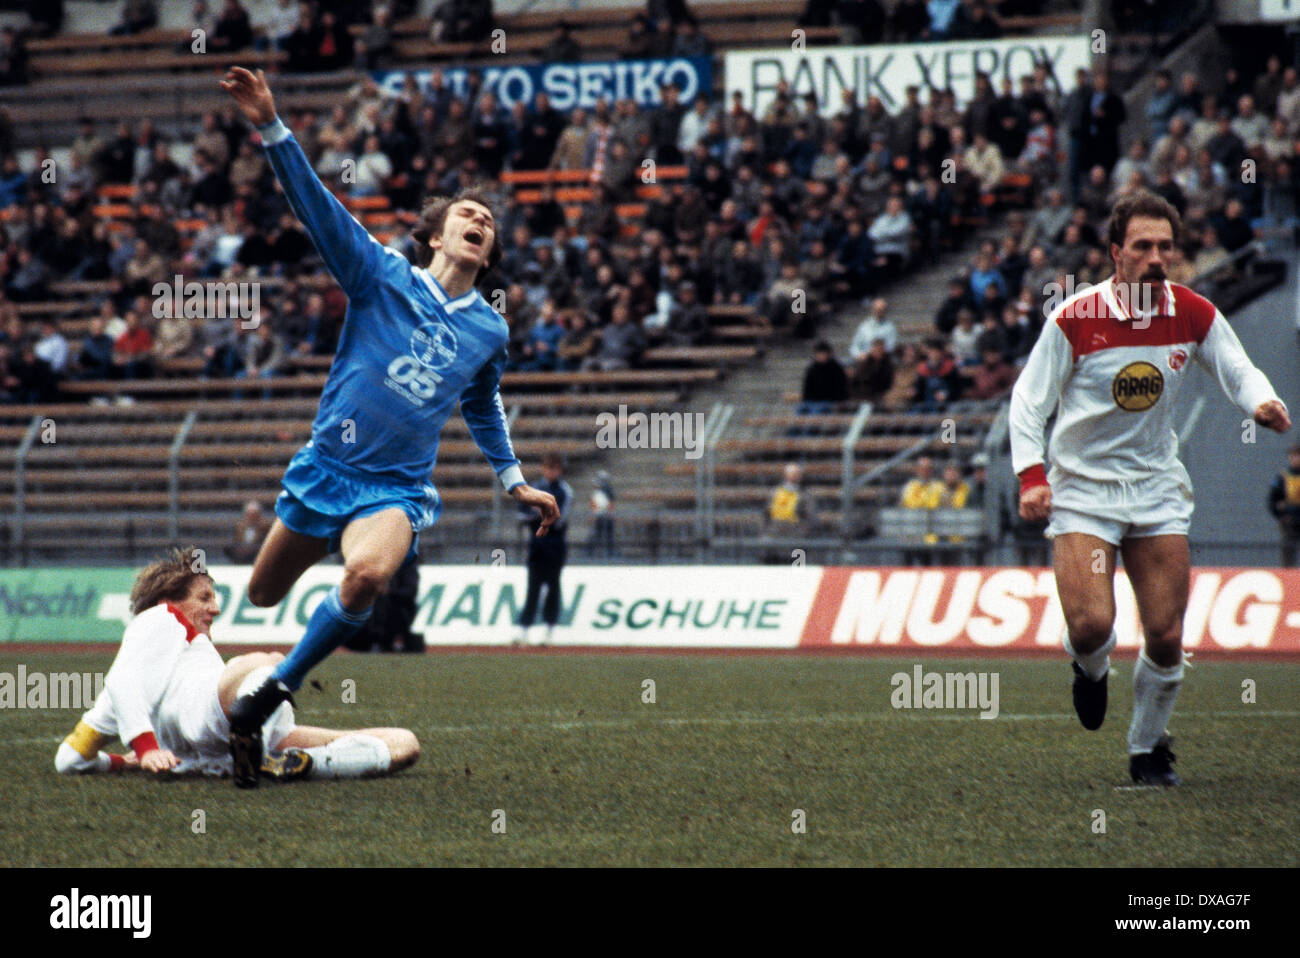 football, Bundesliga, 1984/1985, Rhine Stadium, Fortuna Duesseldorf versus FC Bayer 05 Uerdingen 2:2, scene of the match, f.l.t.r. team leader Gerd Zewe (Fortuna), Wolfgang Funkel (Bayer), Peter Loehr (Fortuna) - Stock Image